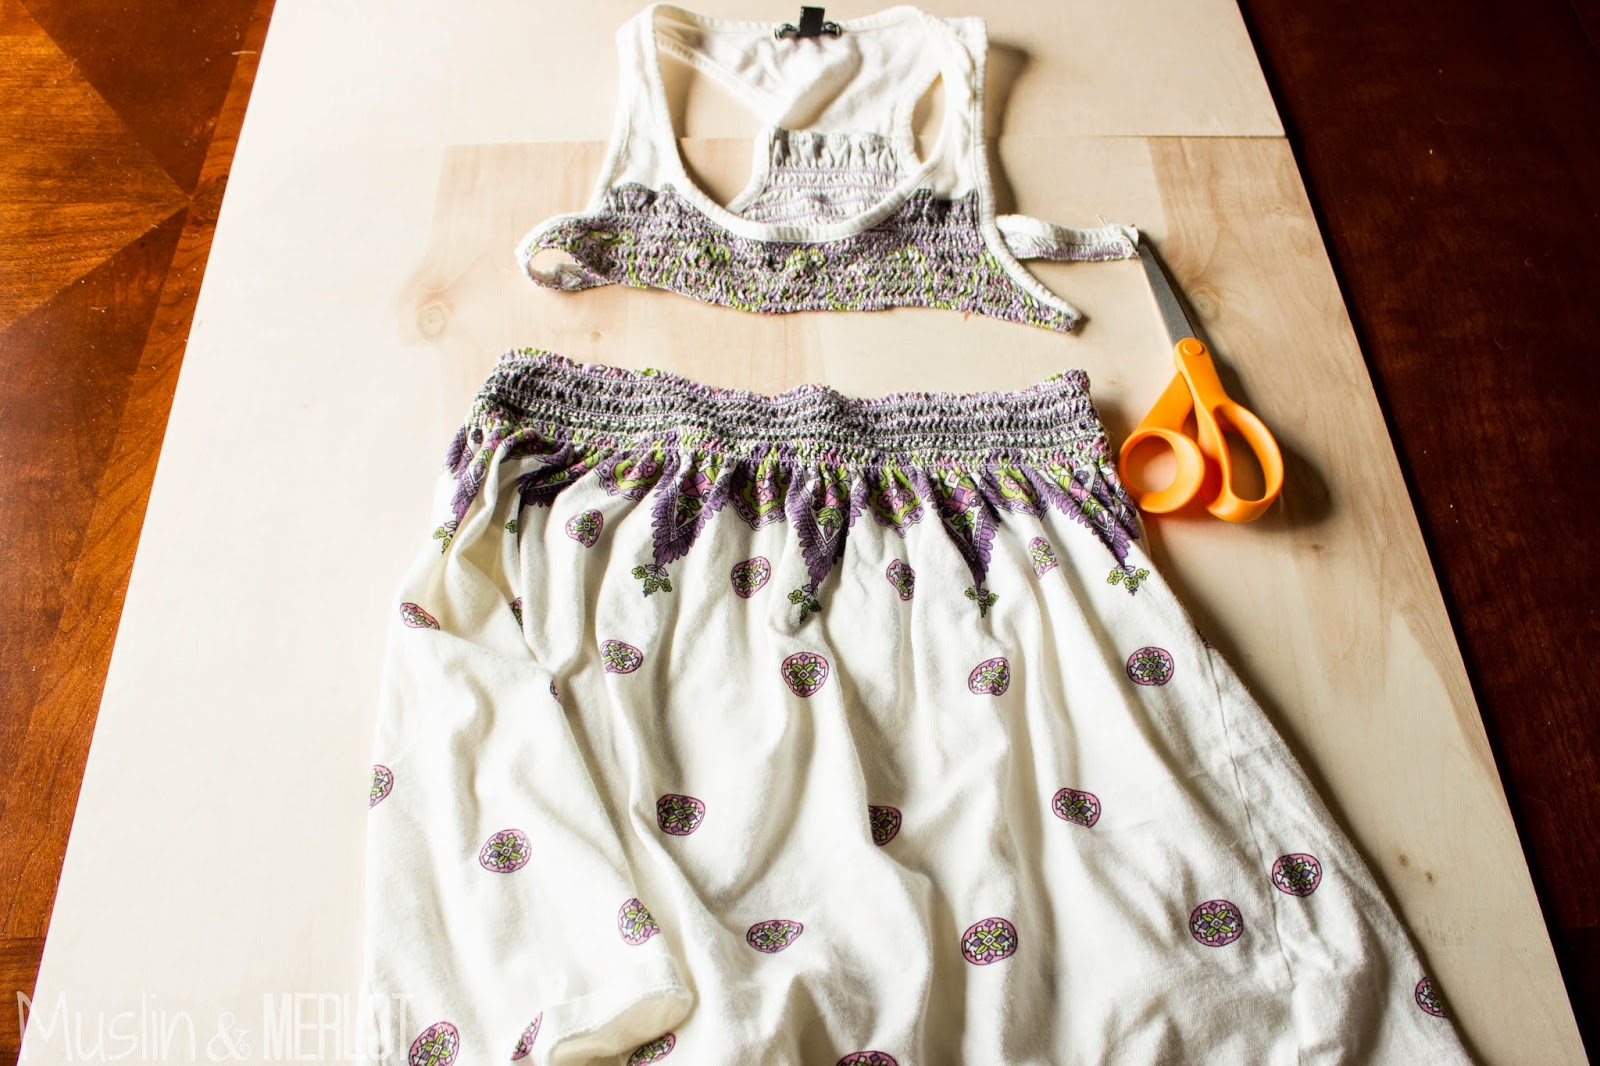 Upcycle Old Clothes Upcycled Clothing Ideas To Give Old Clothes New Life